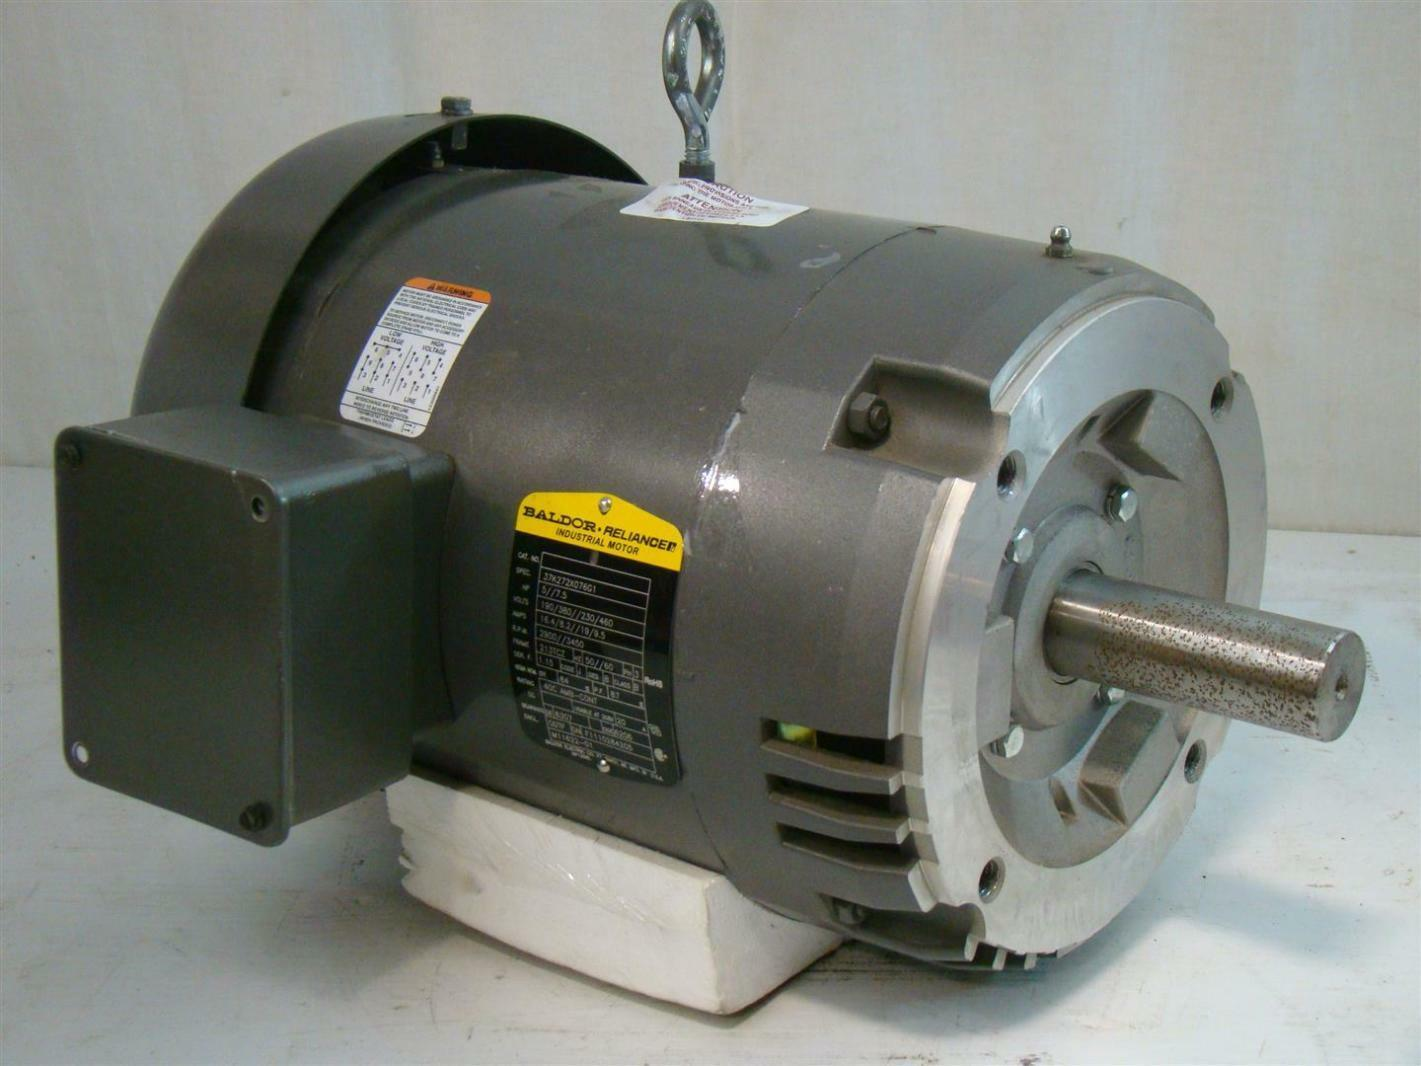 Baldor reliancer industrial motor 5 7 5hp 190 380 230 460v for Baldor industrial motor parts